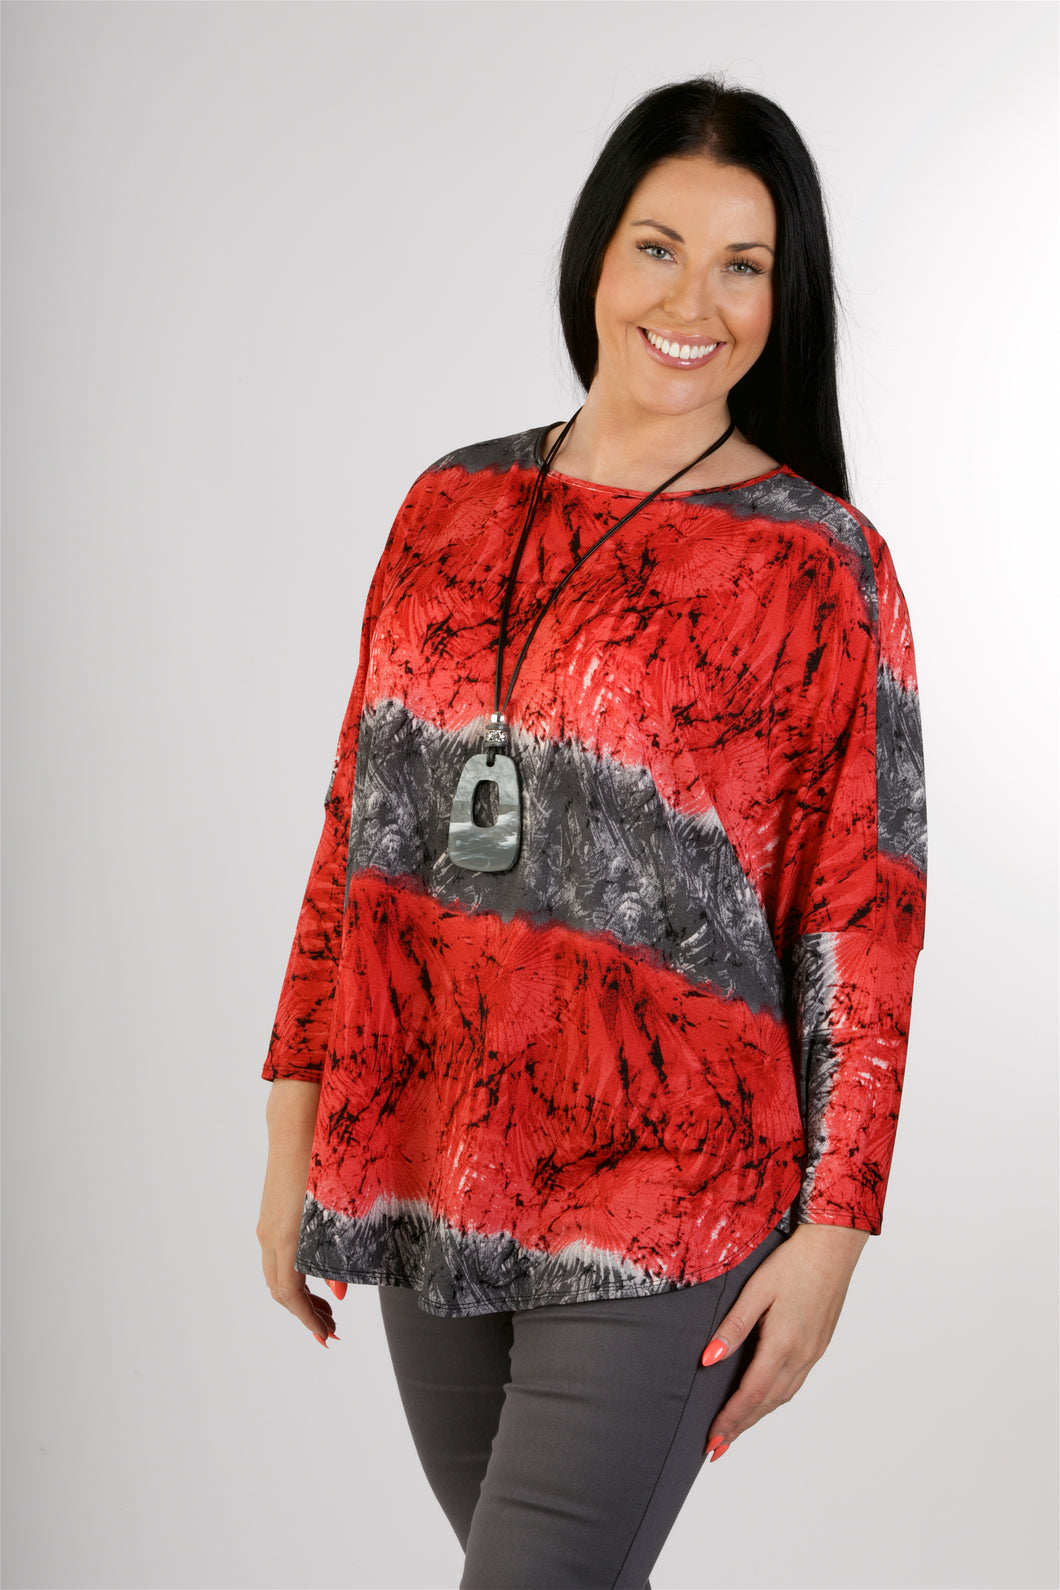 4101 Batwing Print Top with Necklace